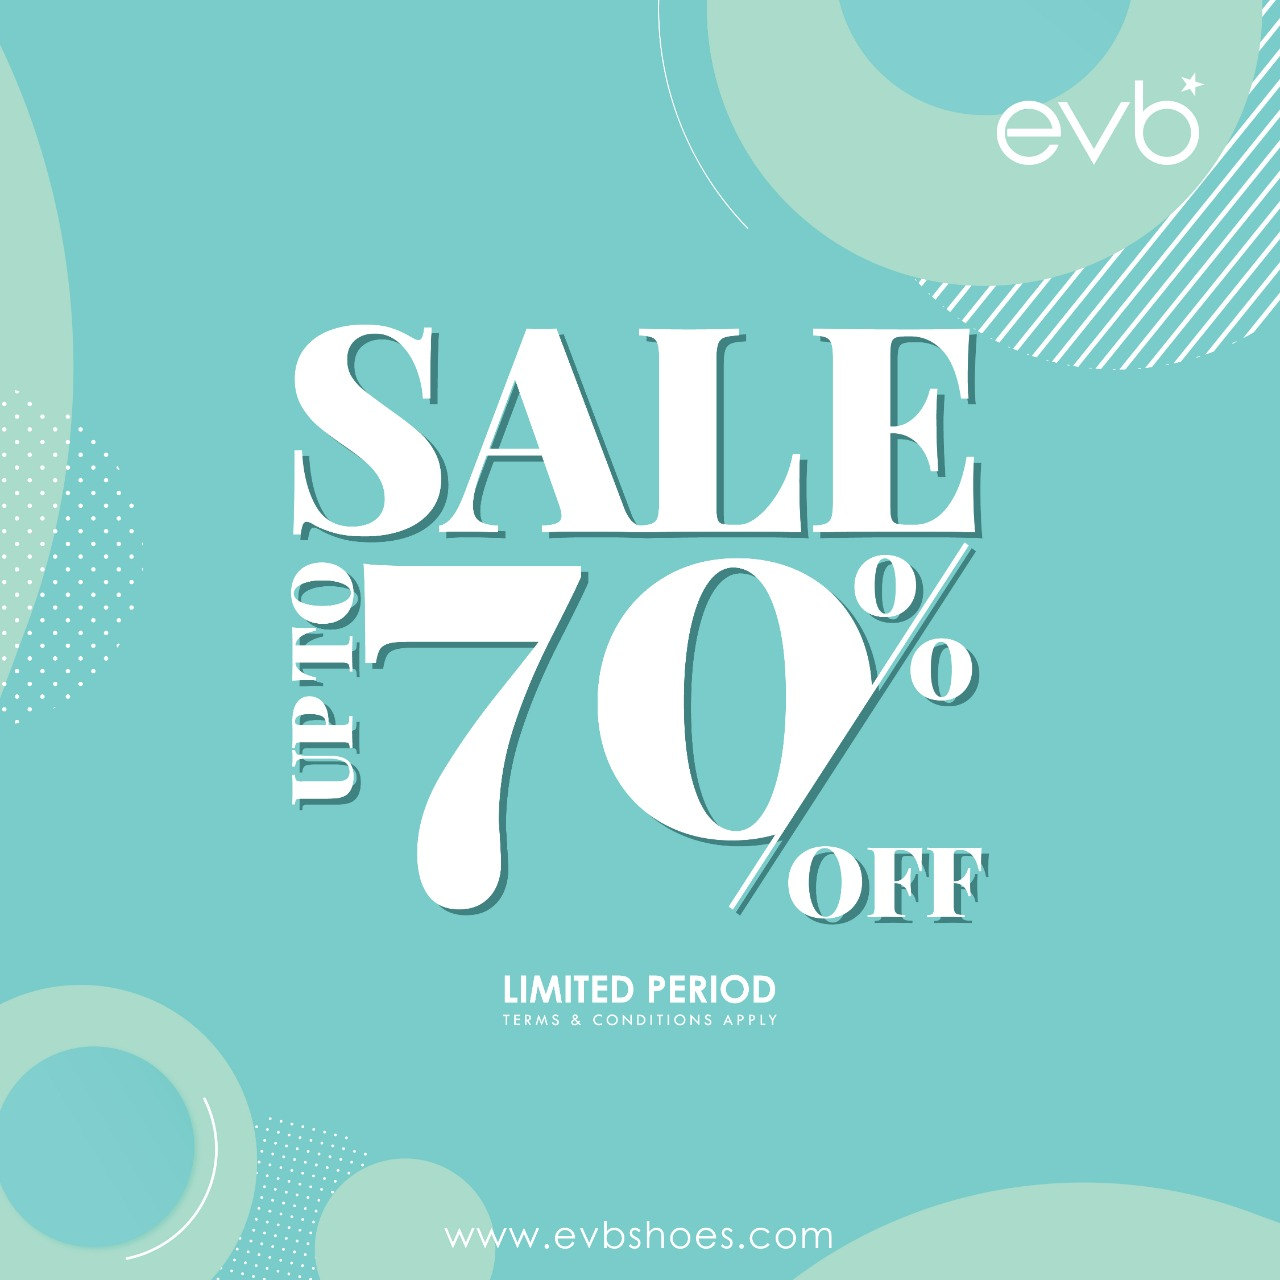 Promo EVB SALE! DISKON Up to 70% Off